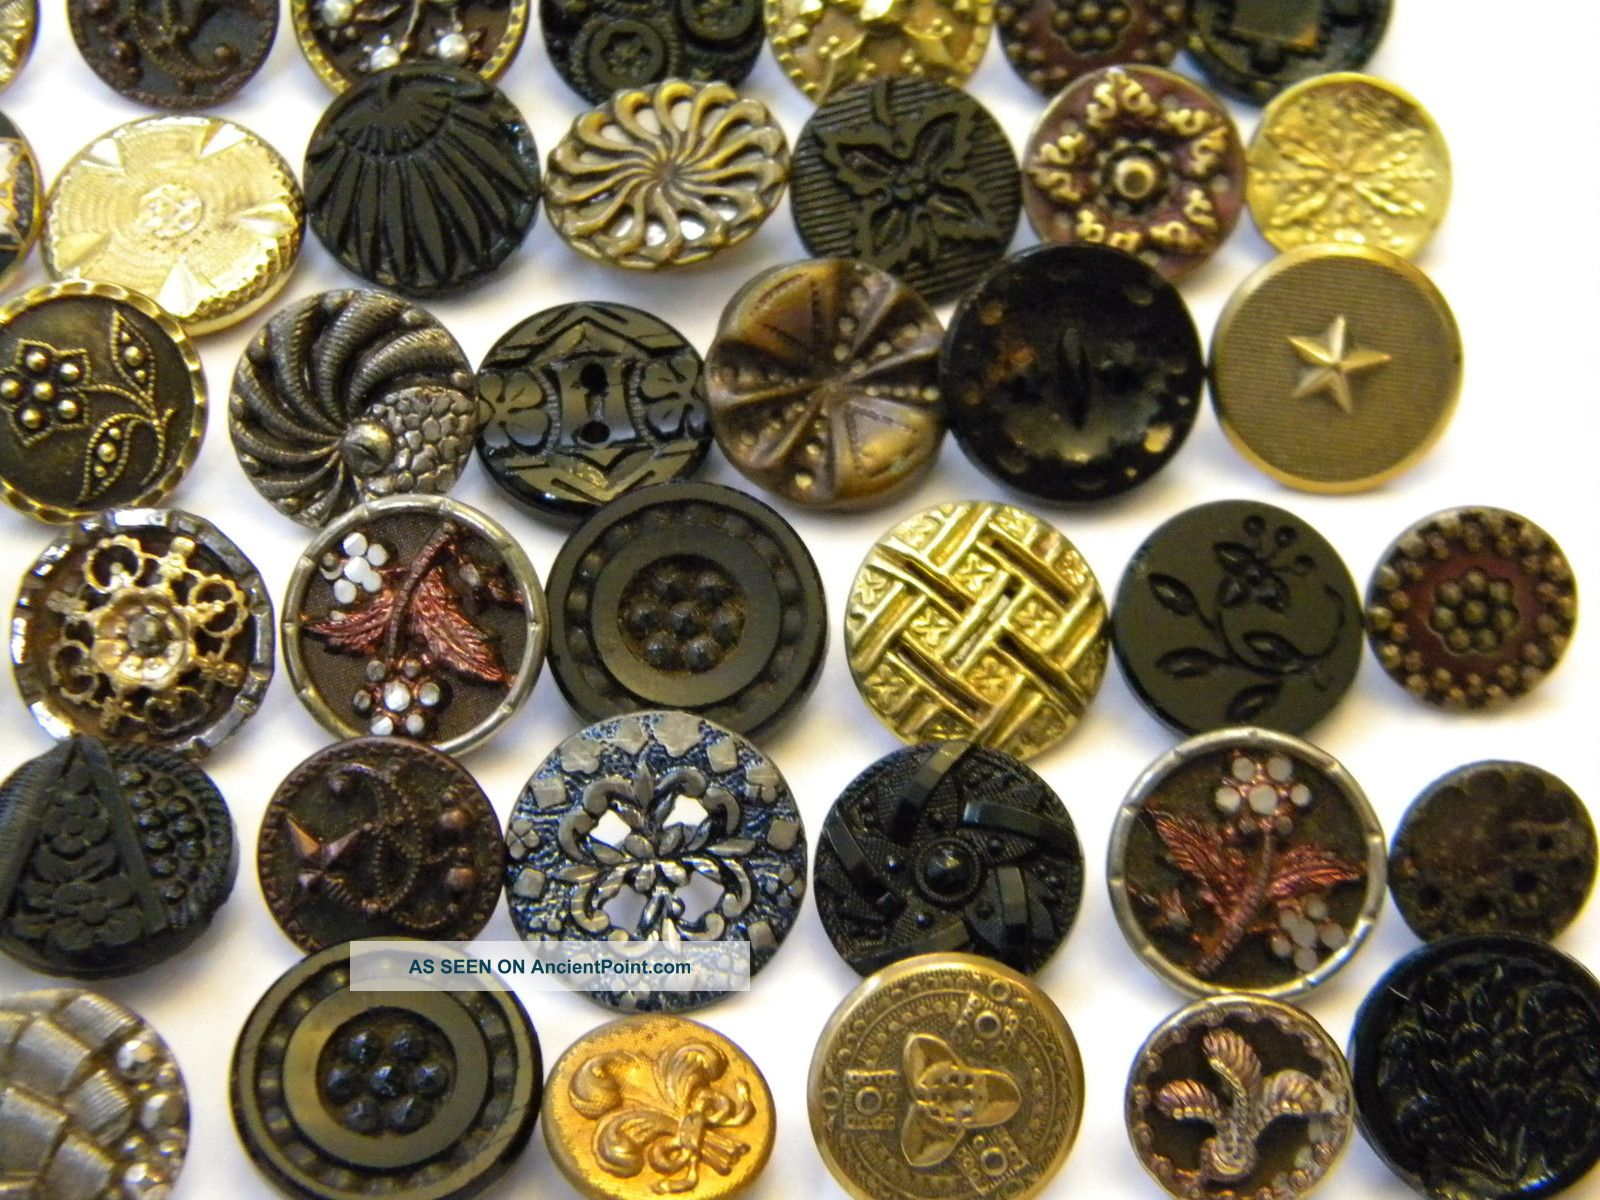 39338 100 Antique Vintage Metal Buttons Victorian Cut Steel Old Brass